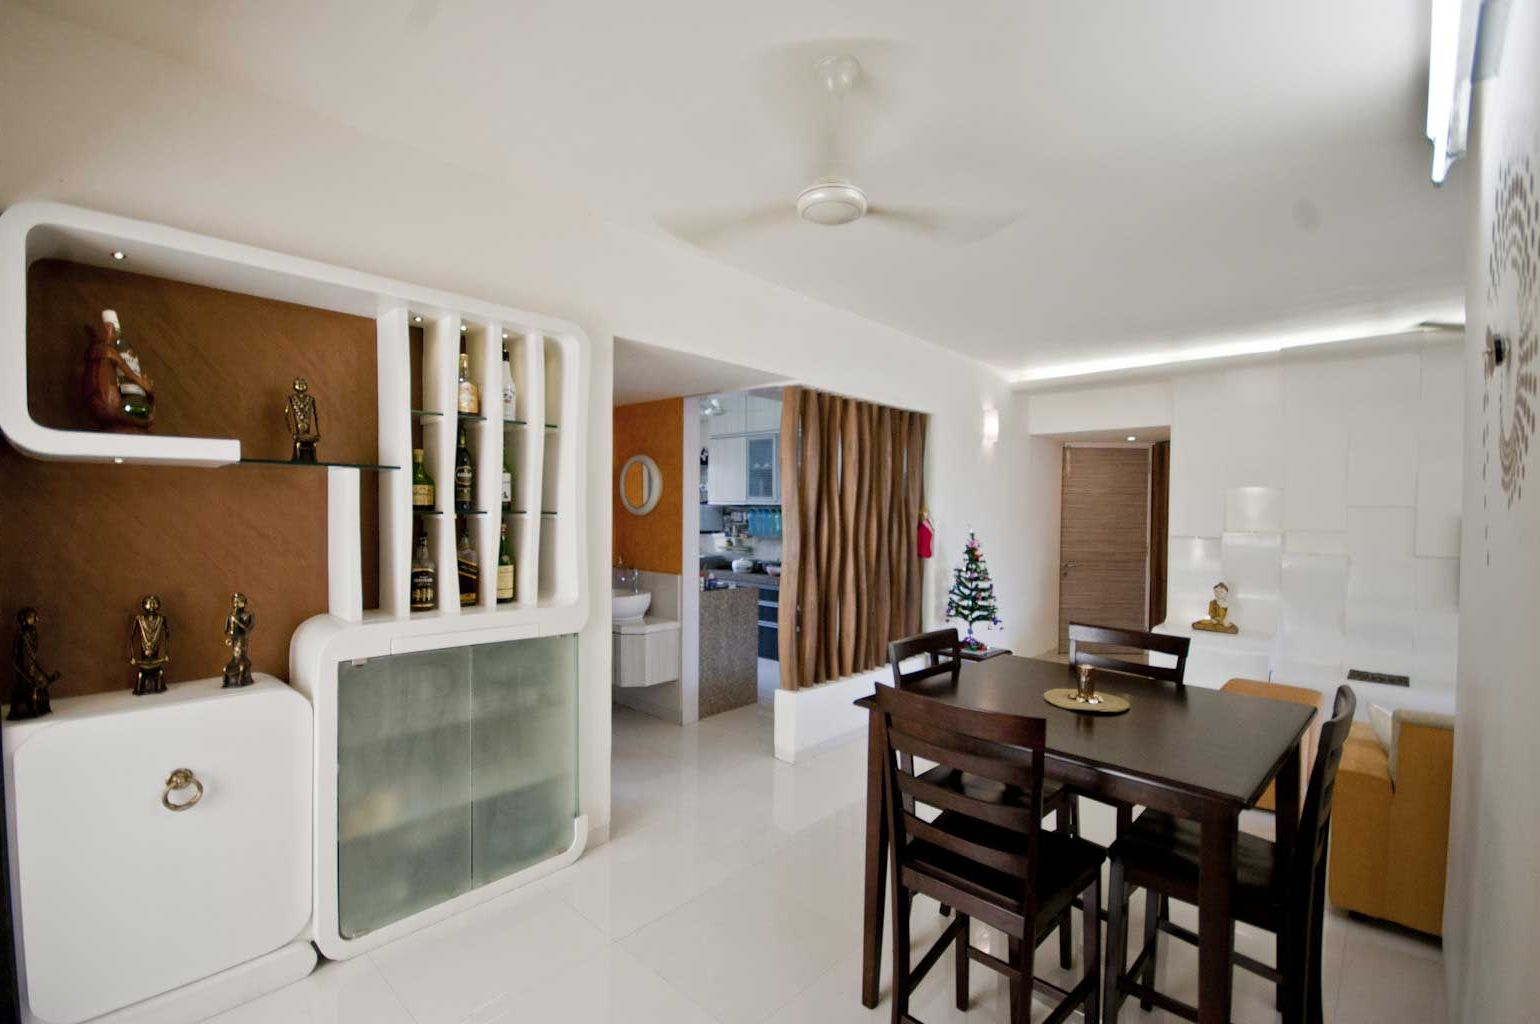 Best Interior Designer In Kolkata : Ideas & Suggestions For Home